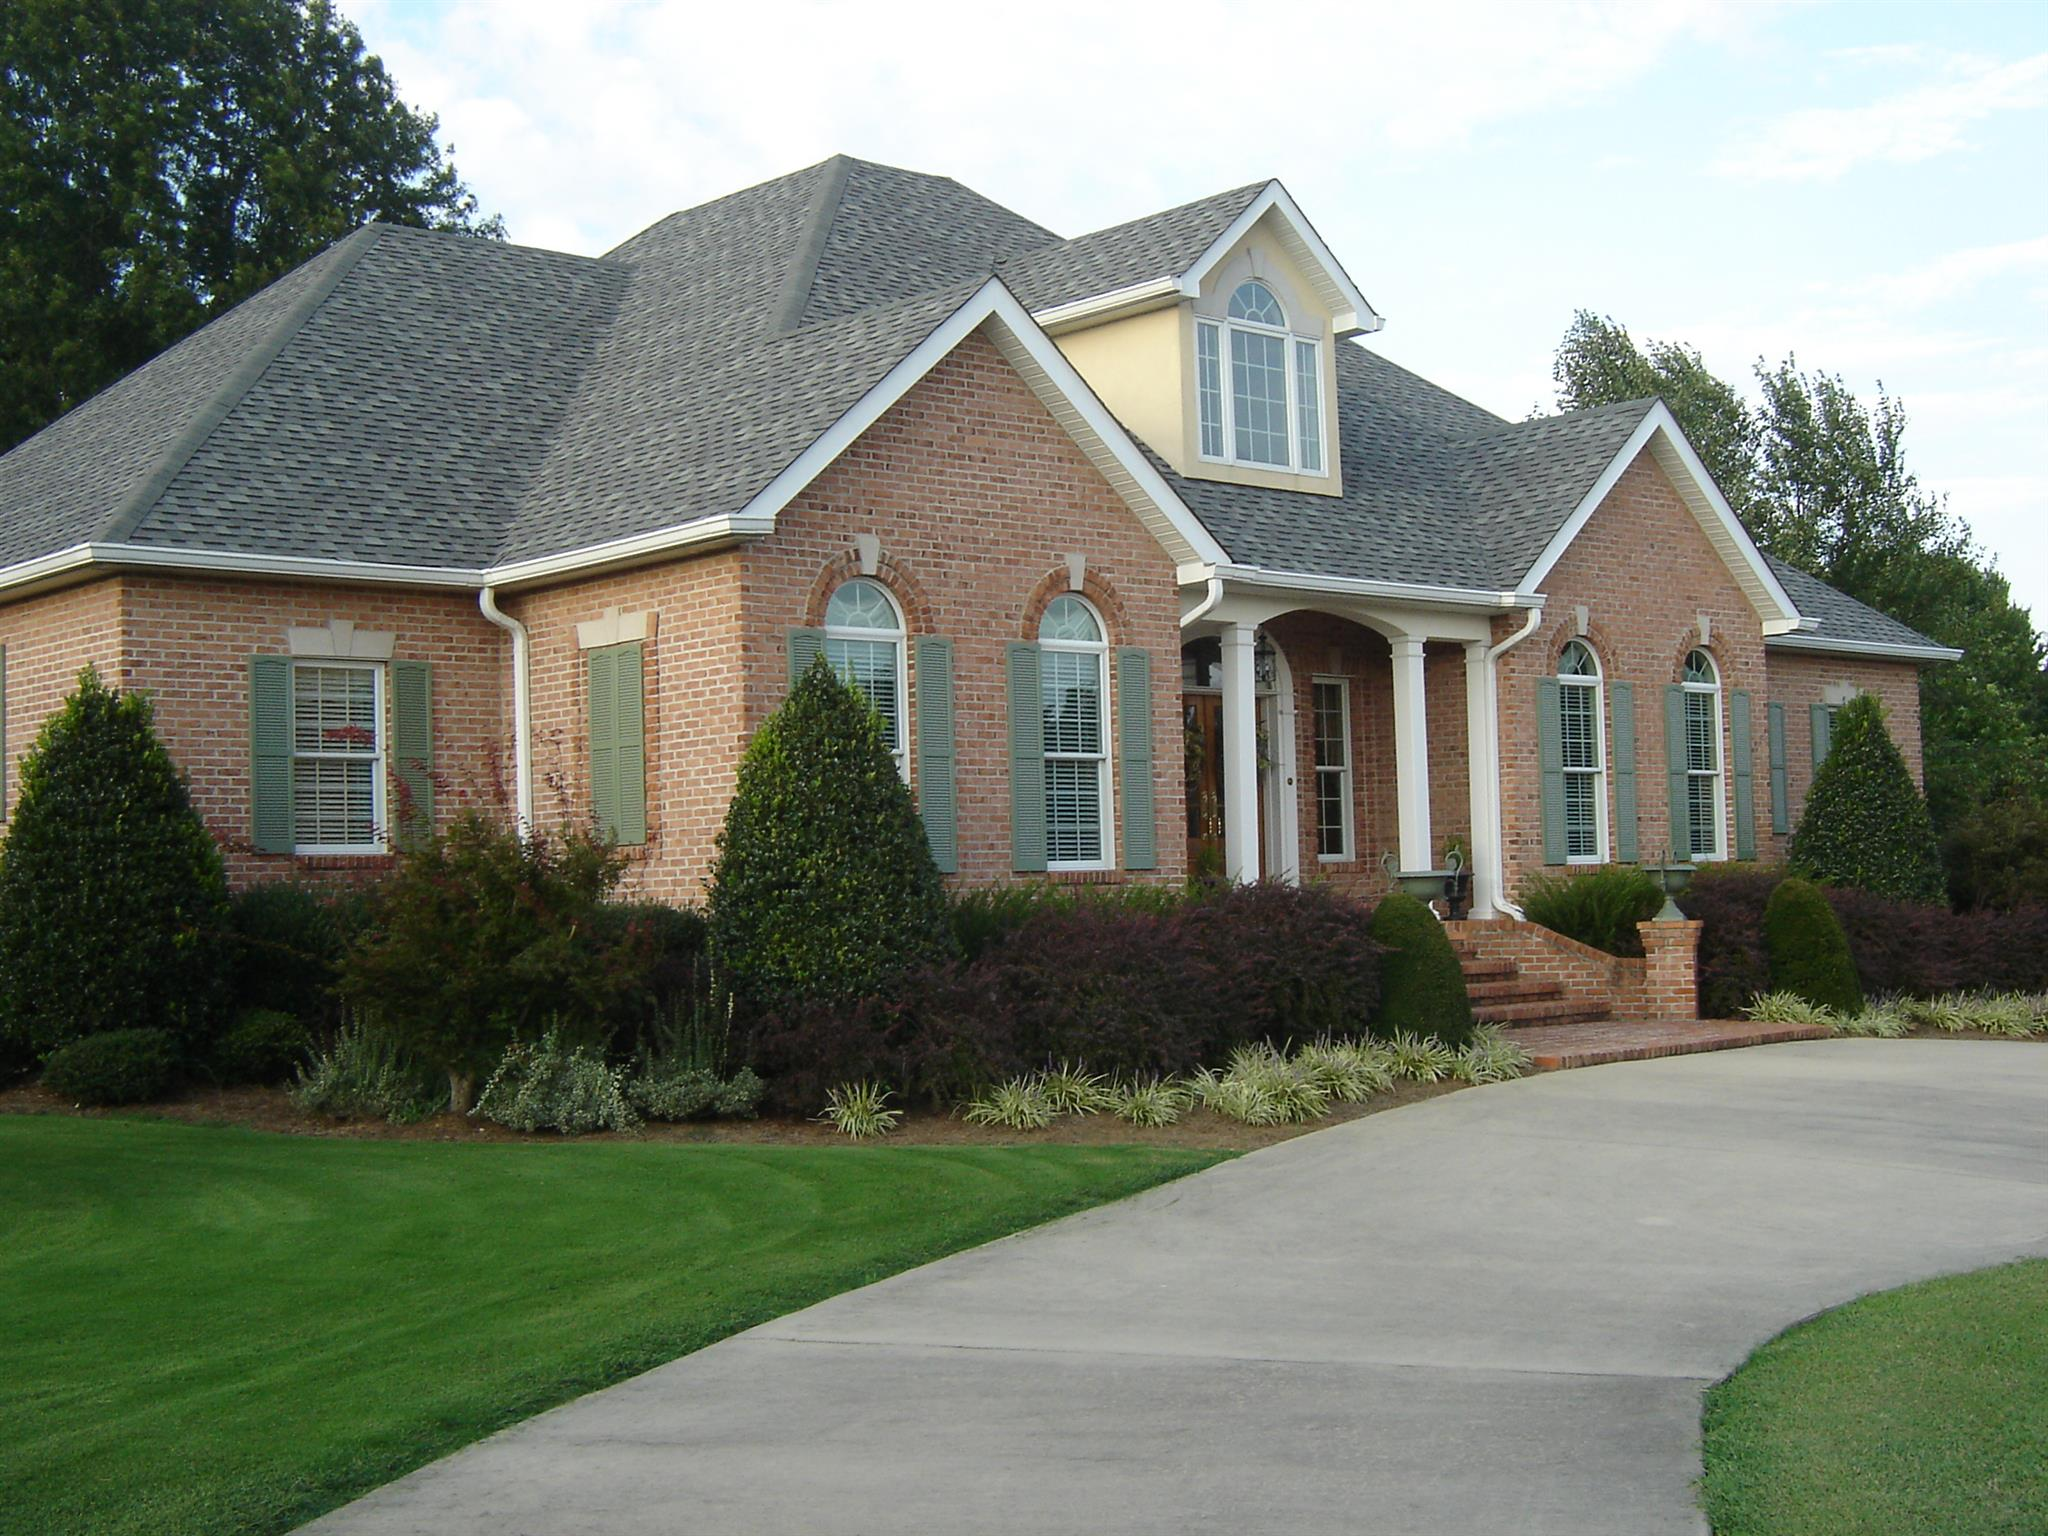 411 Riverbend Country Club Rd, Shelbyville, TN 37160